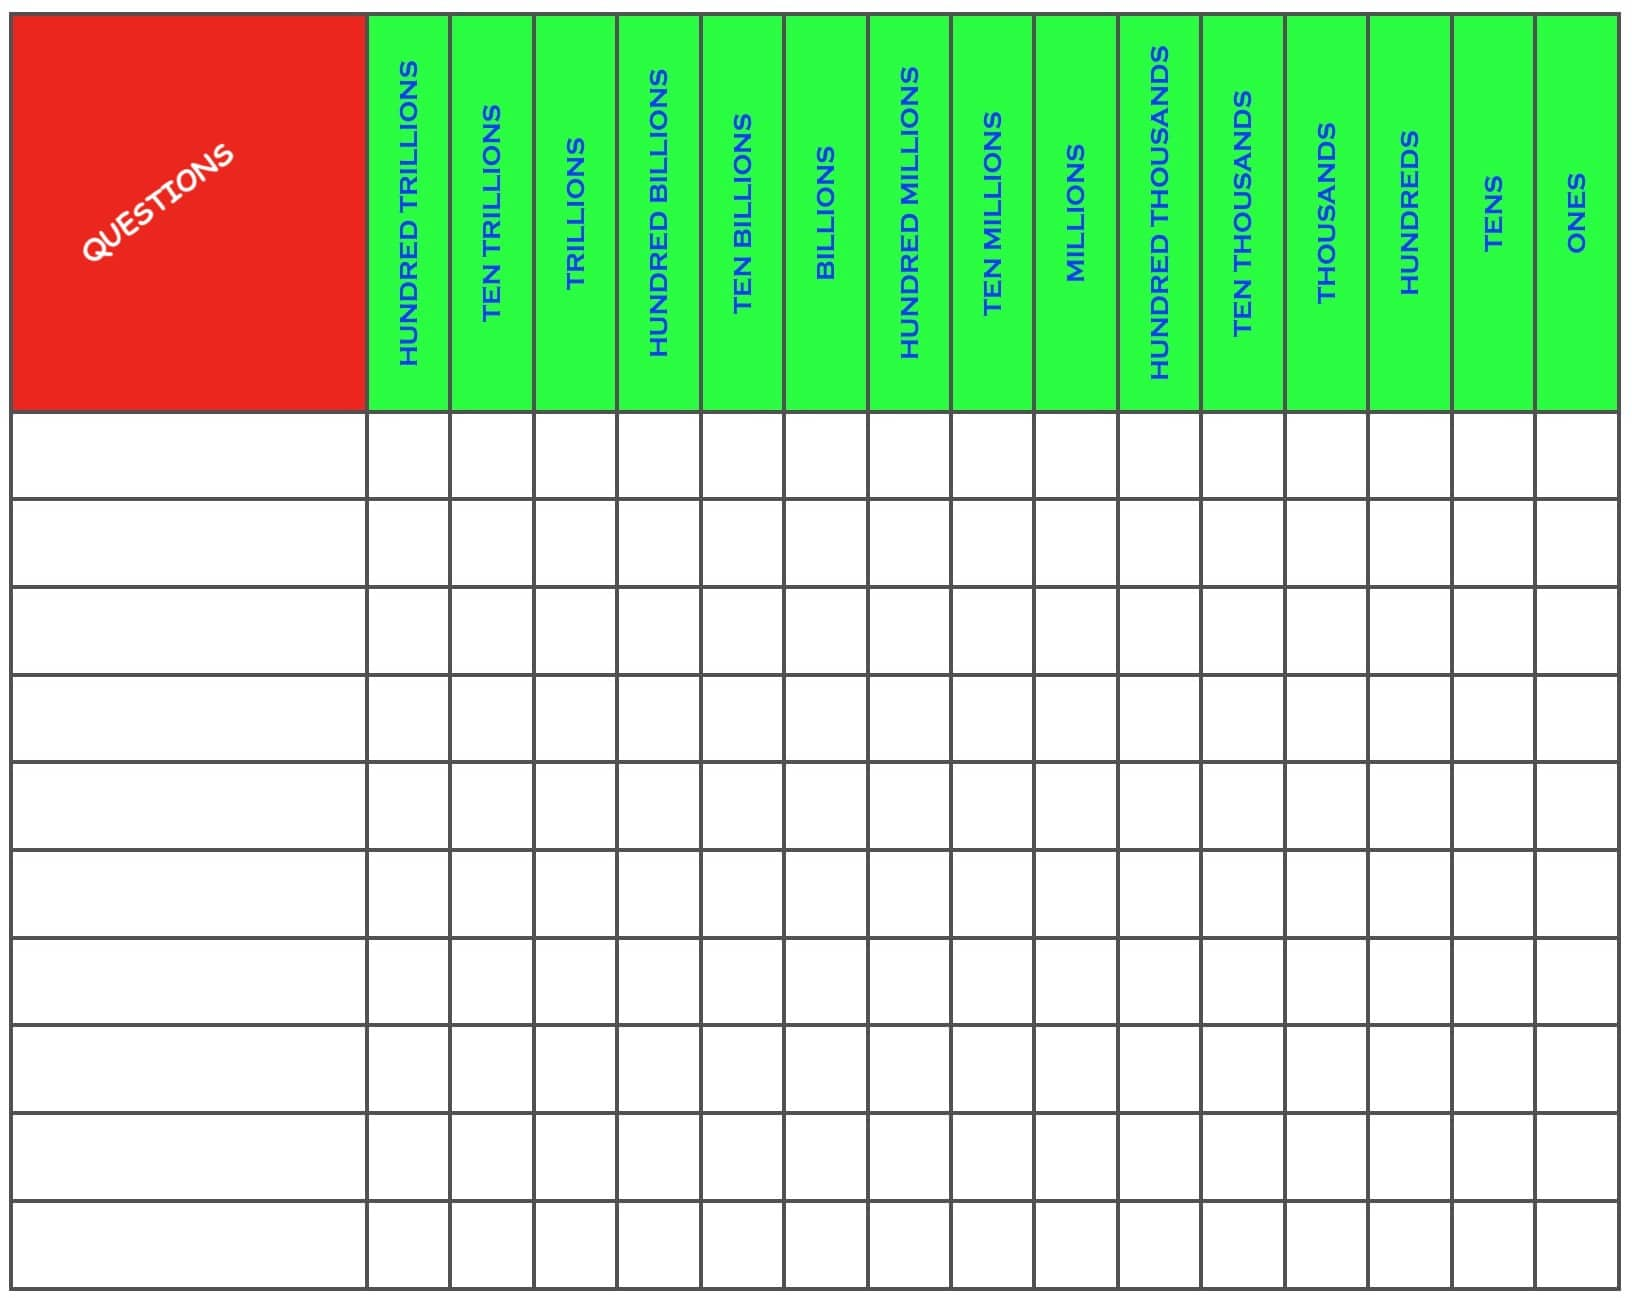 Whole Numbers Place Value Chart Names And Periods